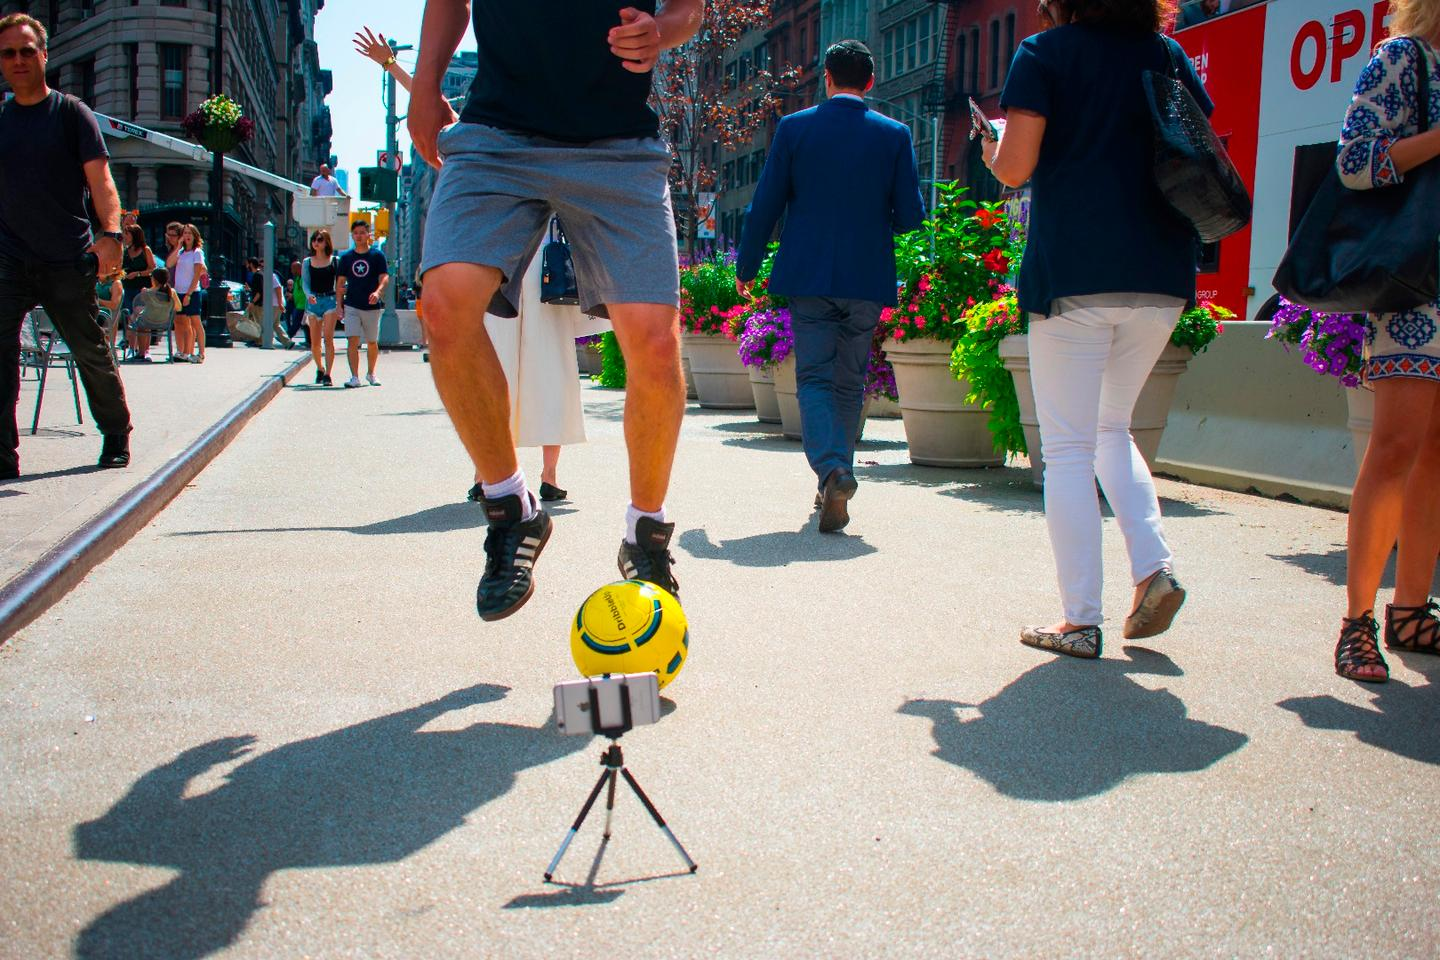 The DribbleUp Smart Soccer Ball is optically tracked by the user's smartphone